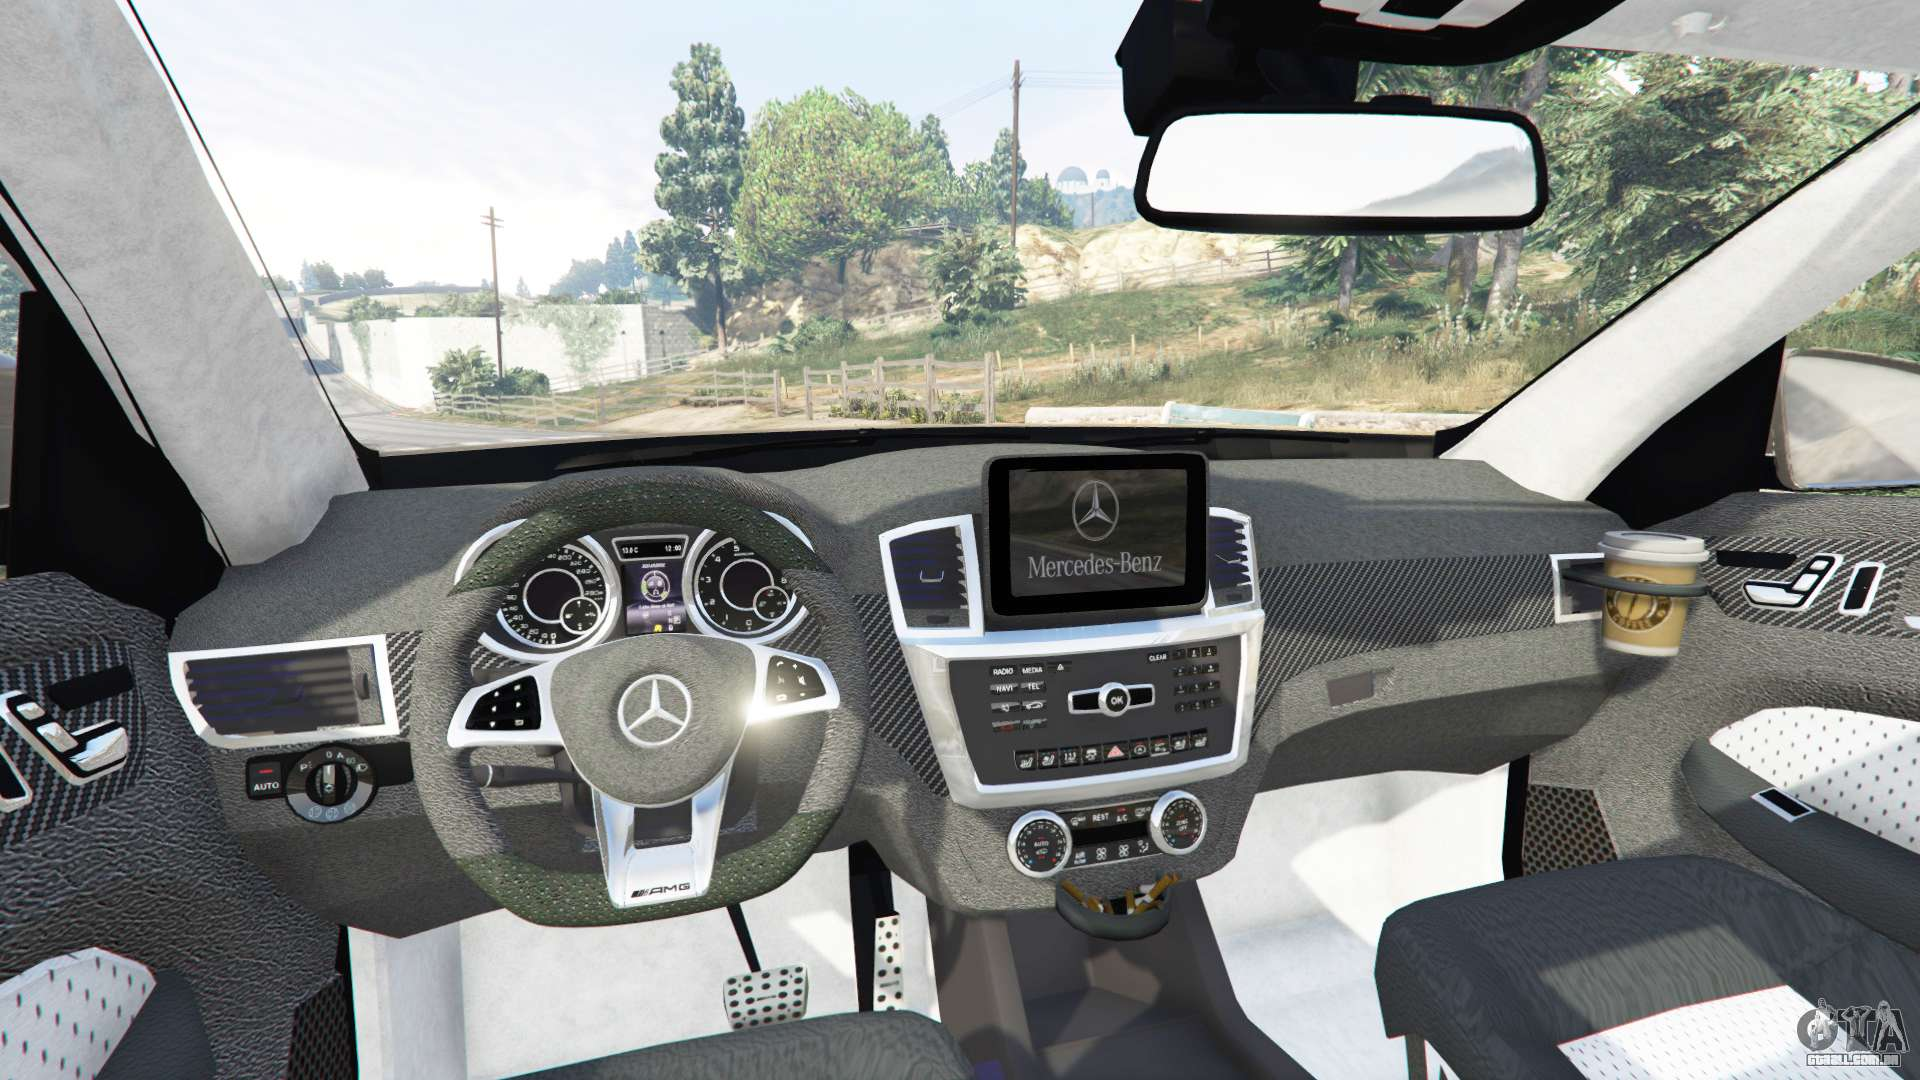 Mercedes benz gle 450 amg 4matic c292 add on para gta 5 for Mercedes benz add